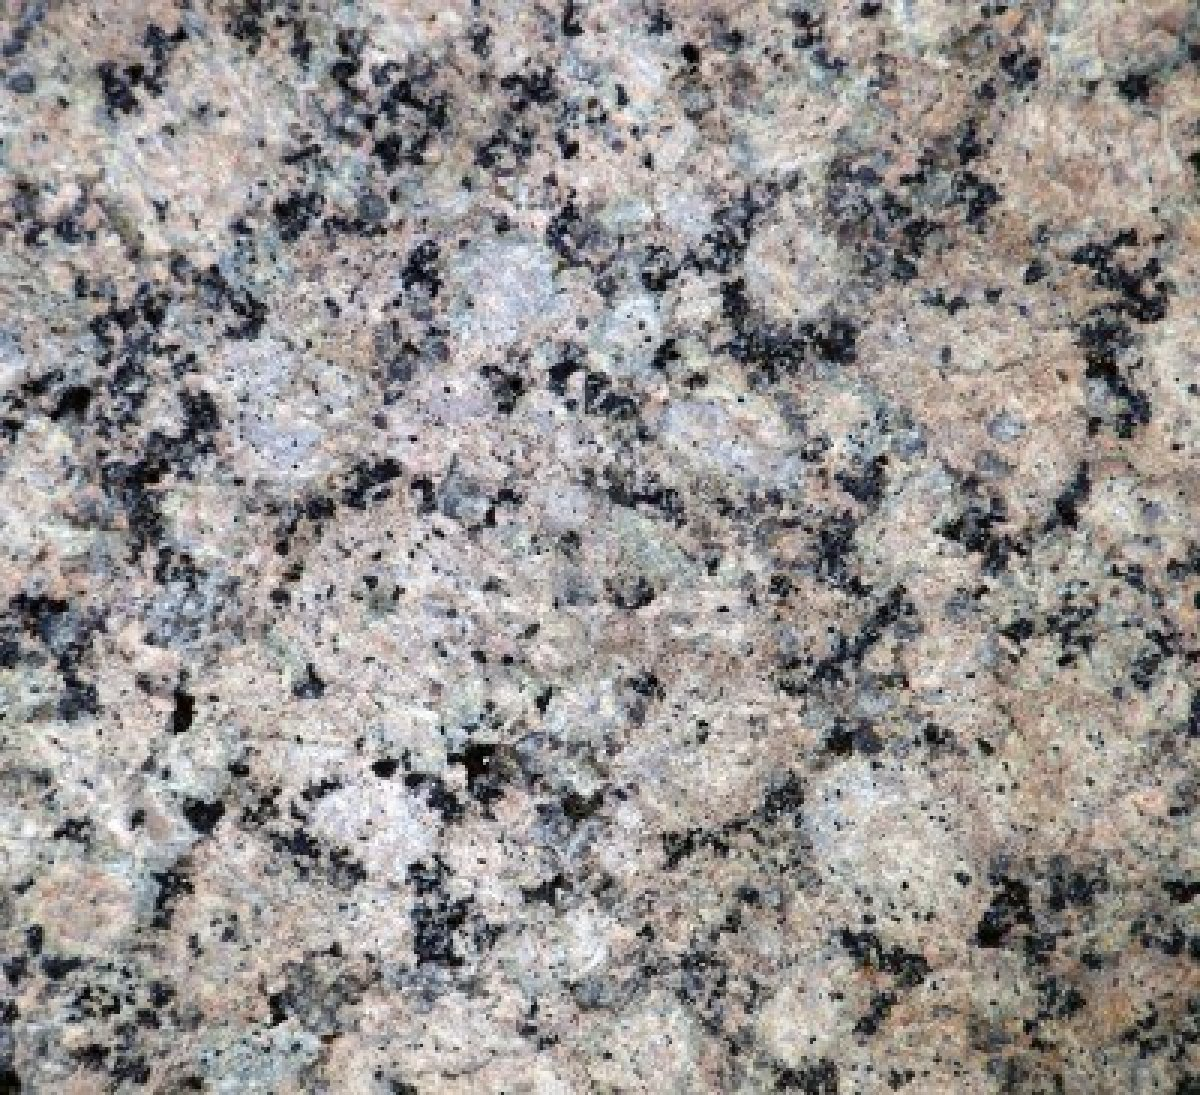 Pin Granite Stone Texture Image Search Results on Pinterest